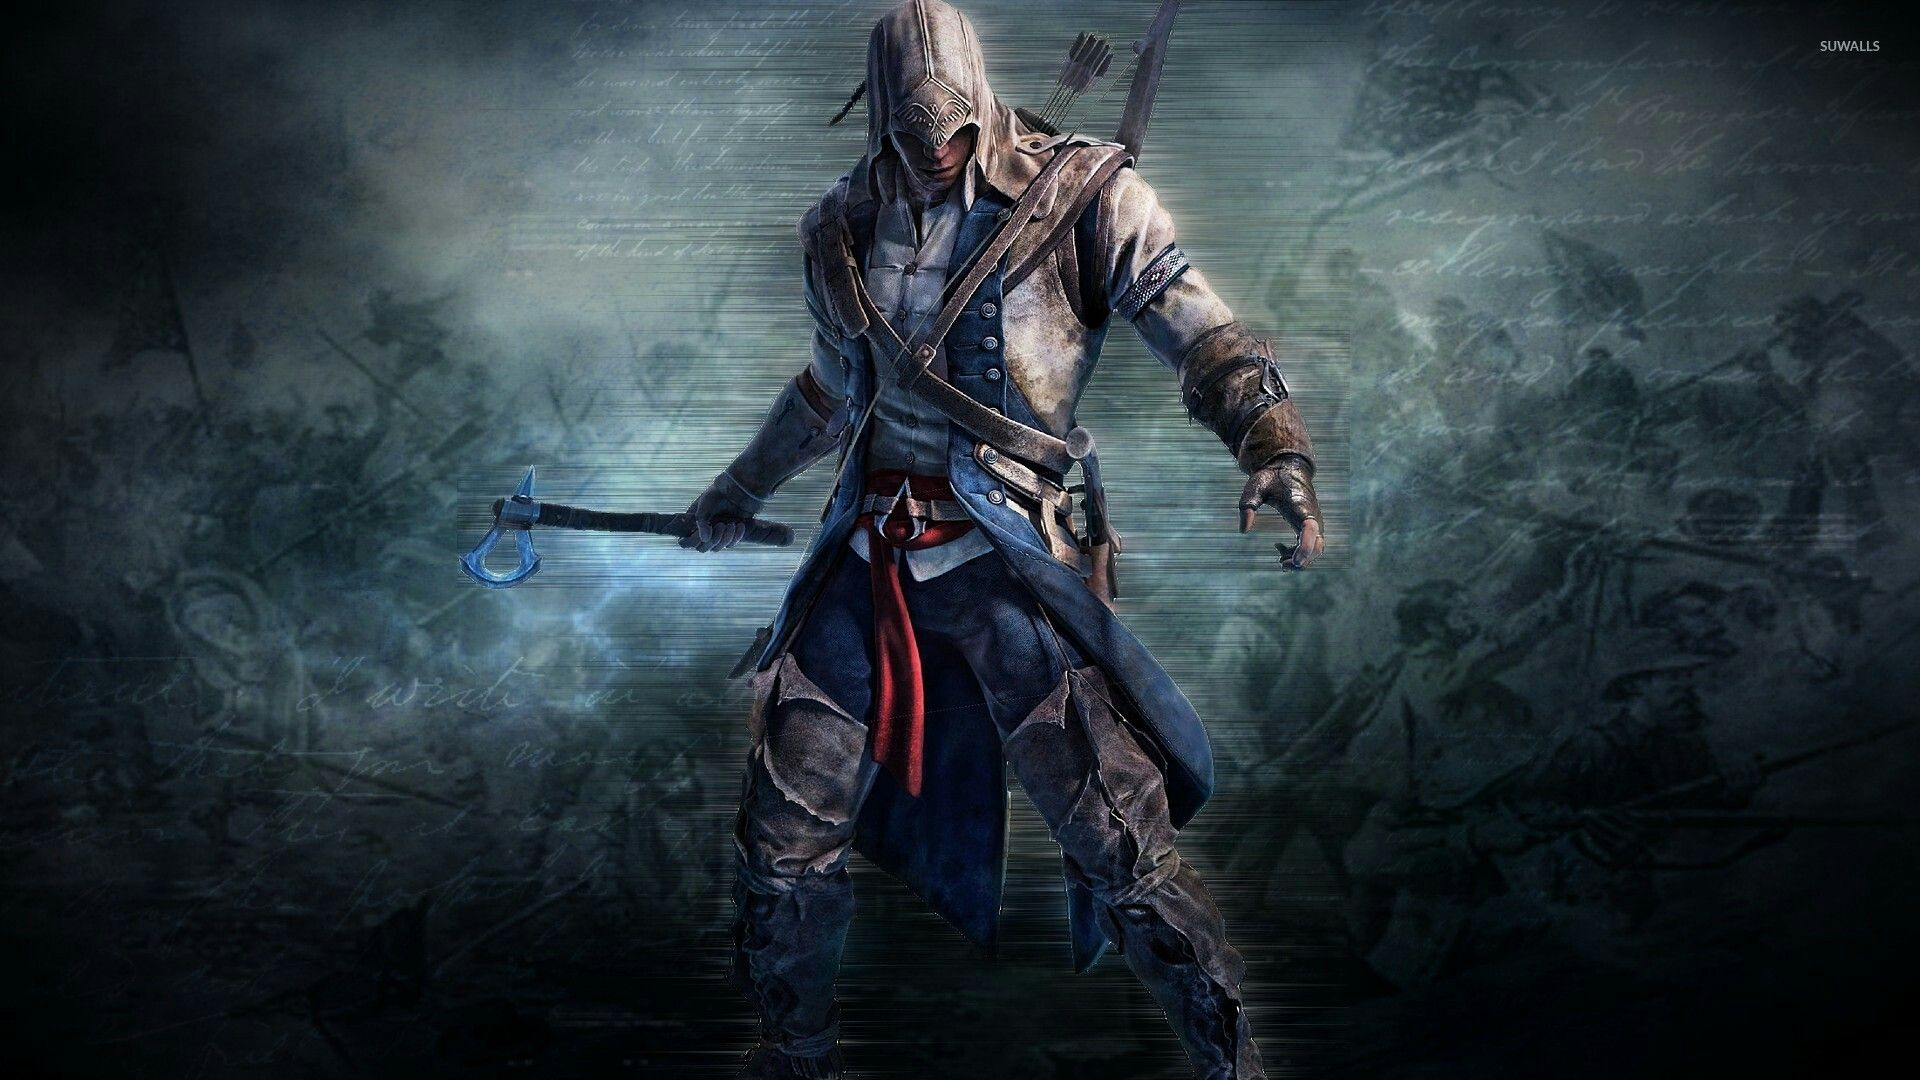 Pin De Assassin S Creed En Assassins S Creed Fondos De Pantalla